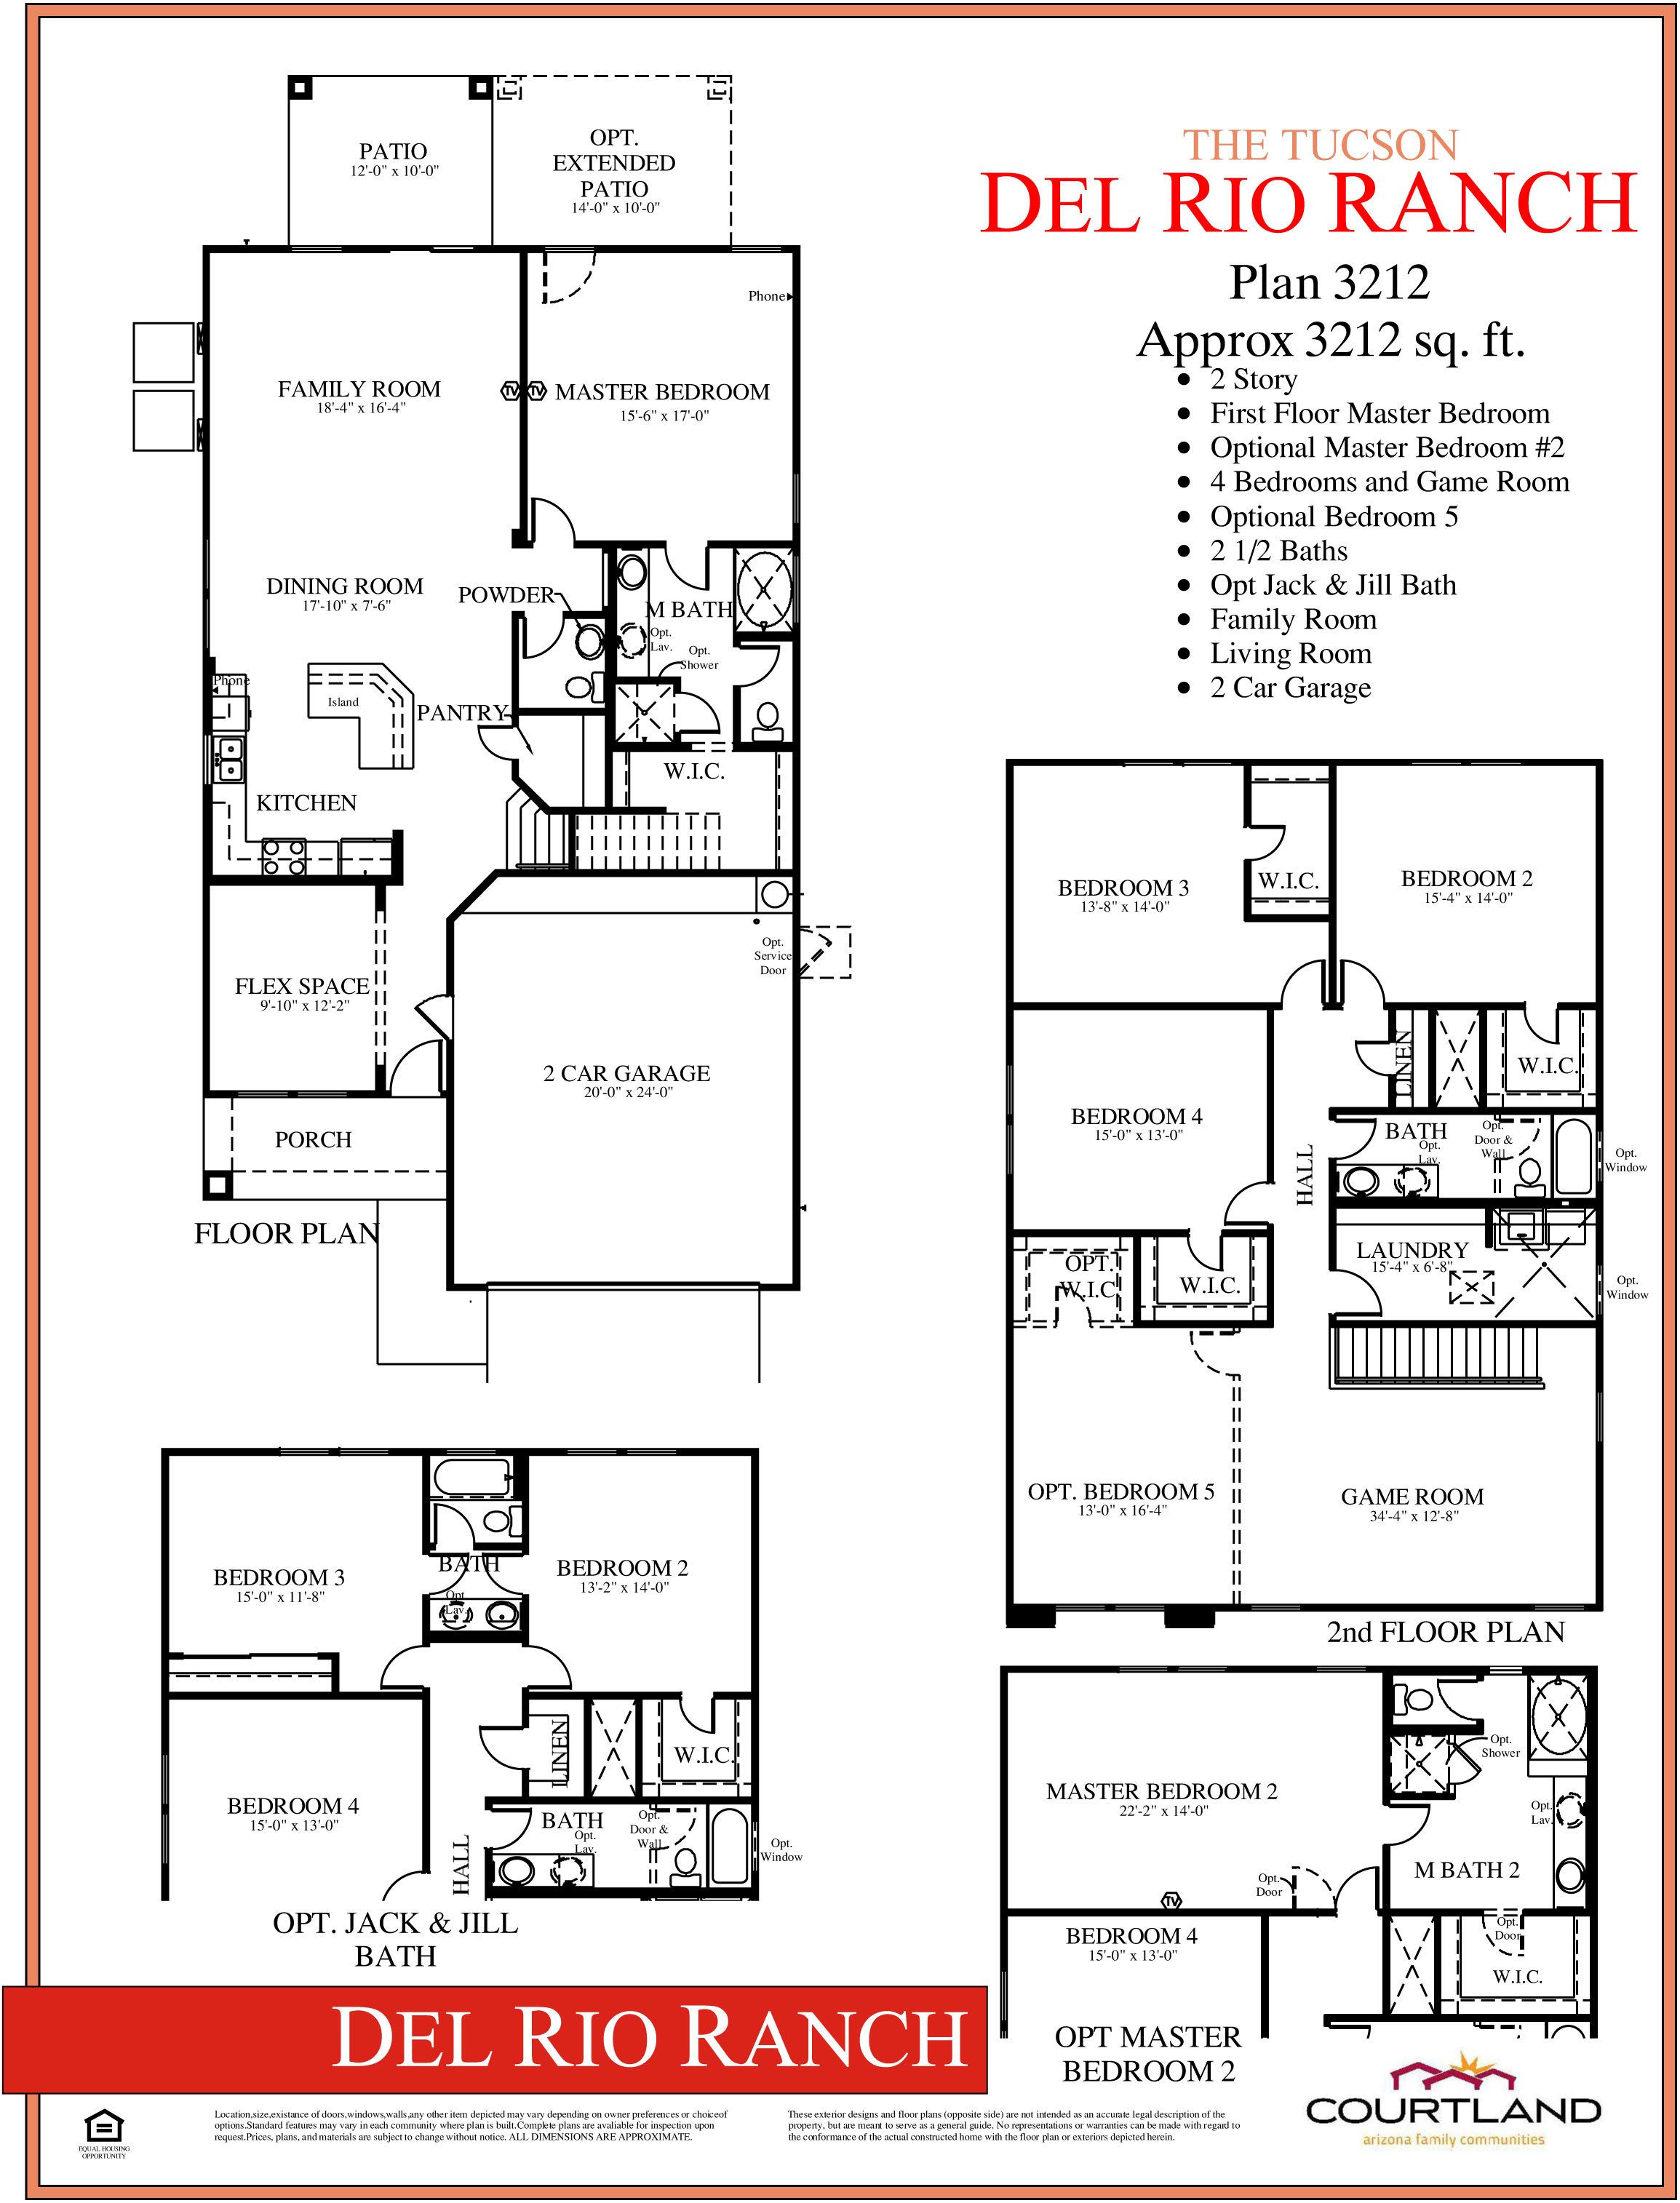 Courtland tucson plan 3212 rv garage homes for Tucson home builders floor plans